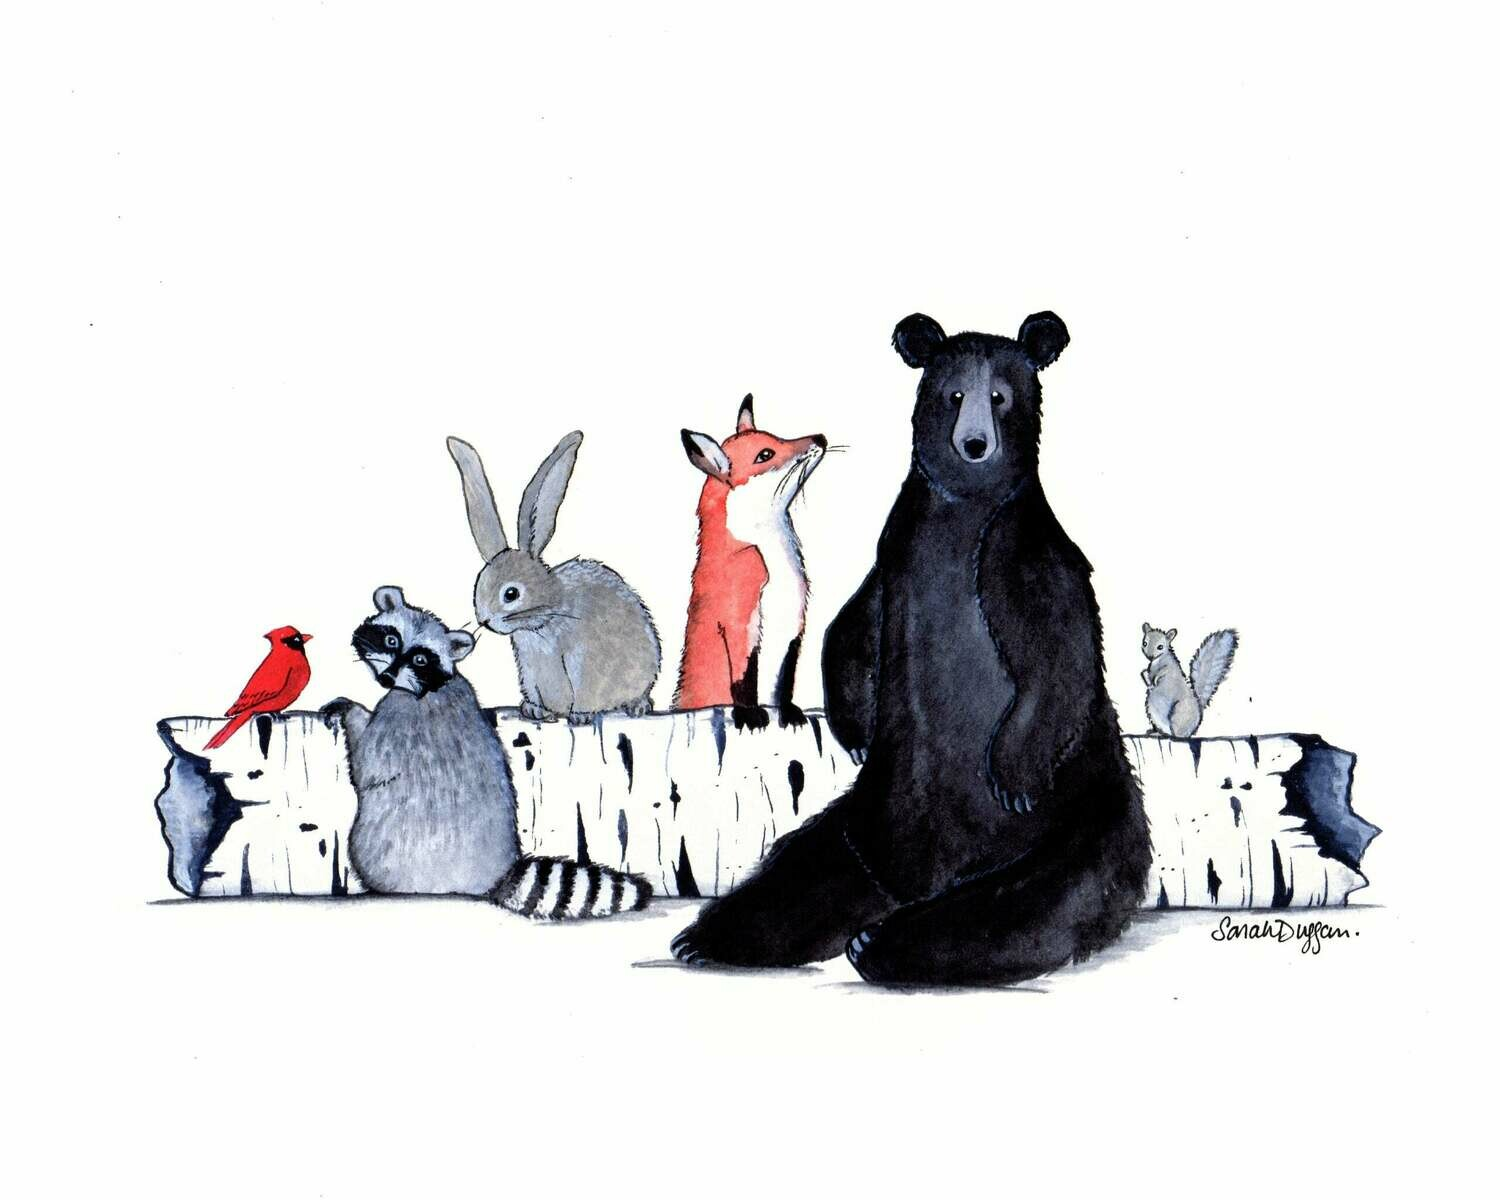 Critters and a Birch Log - Sarah Duggan